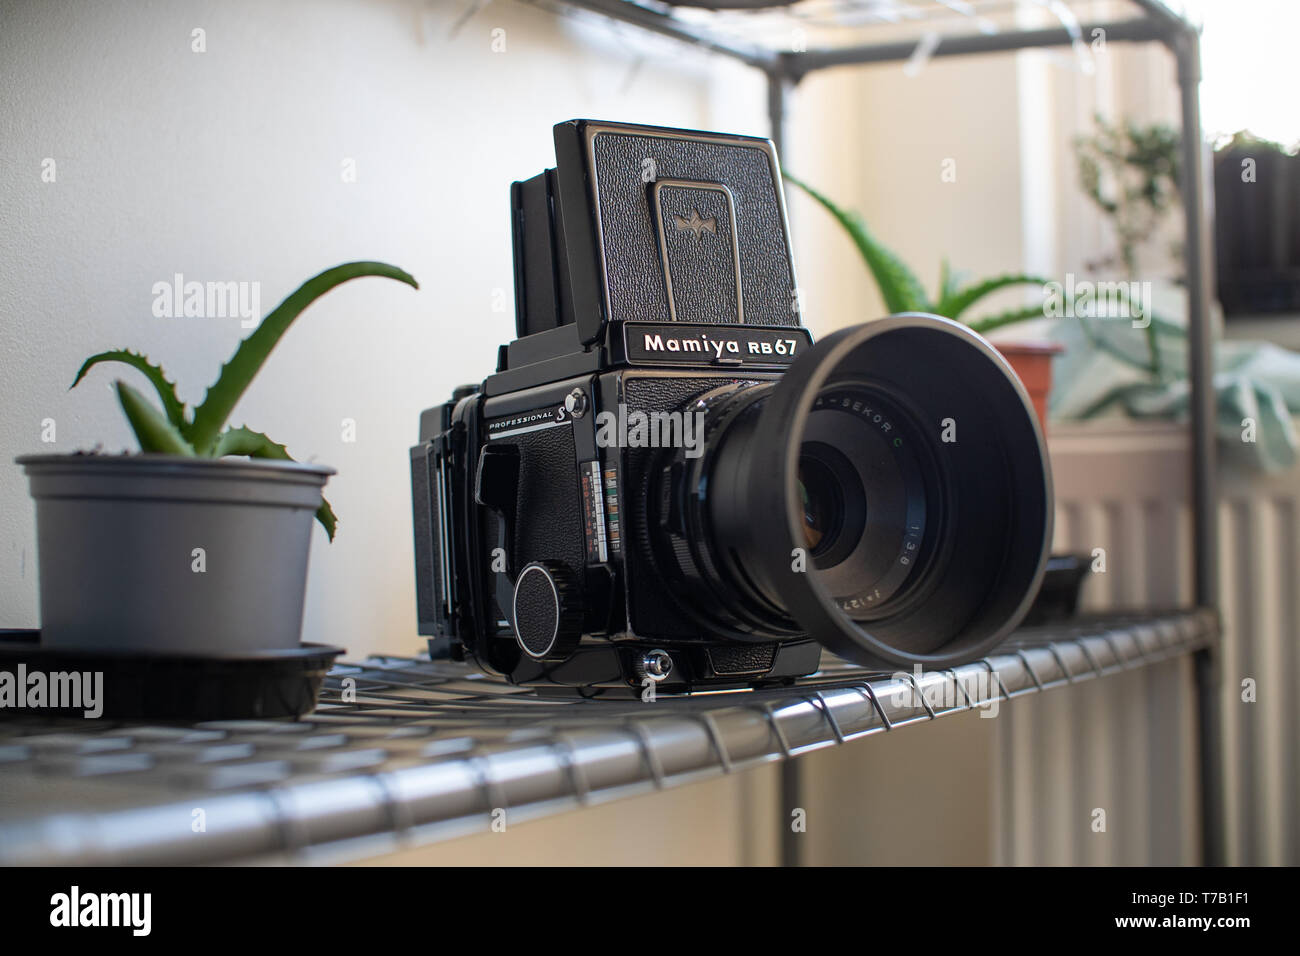 A Mamiya medium format camera sat on a metallic shelf with some house plants in the foreground and background - Stock Image